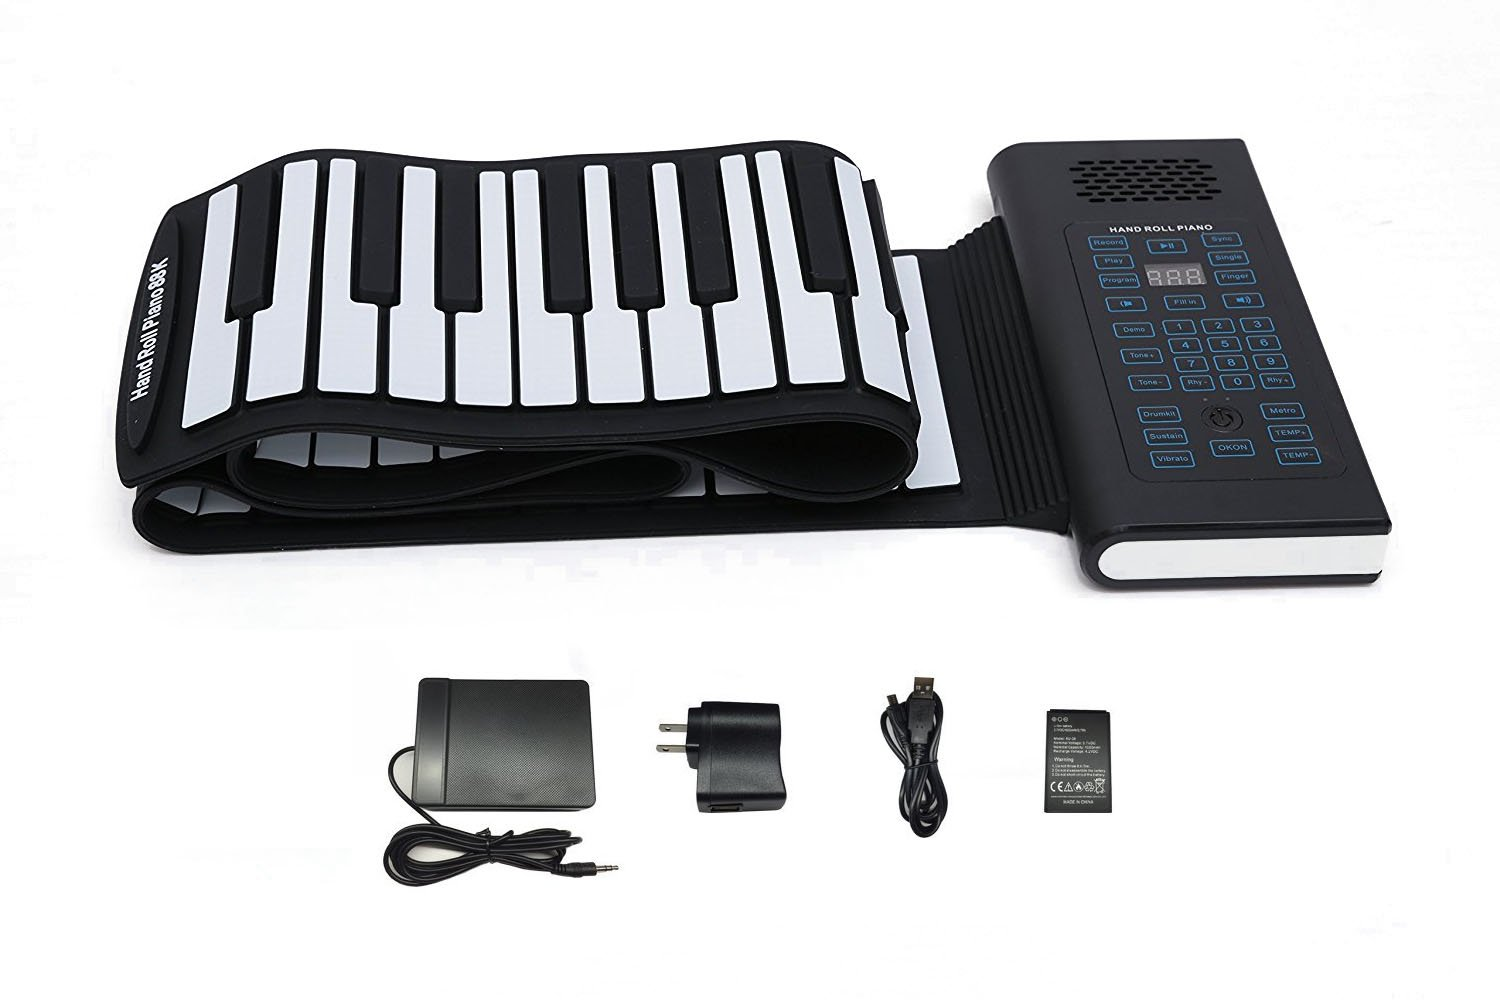 KMUSIC Roll Up Piano, Premium Grade Silicone, THICKENED KEYS, and Upgraded Built-in Amplifying Speakers - Educational Piano (A61-61 Keys, Black) by KikerMusic